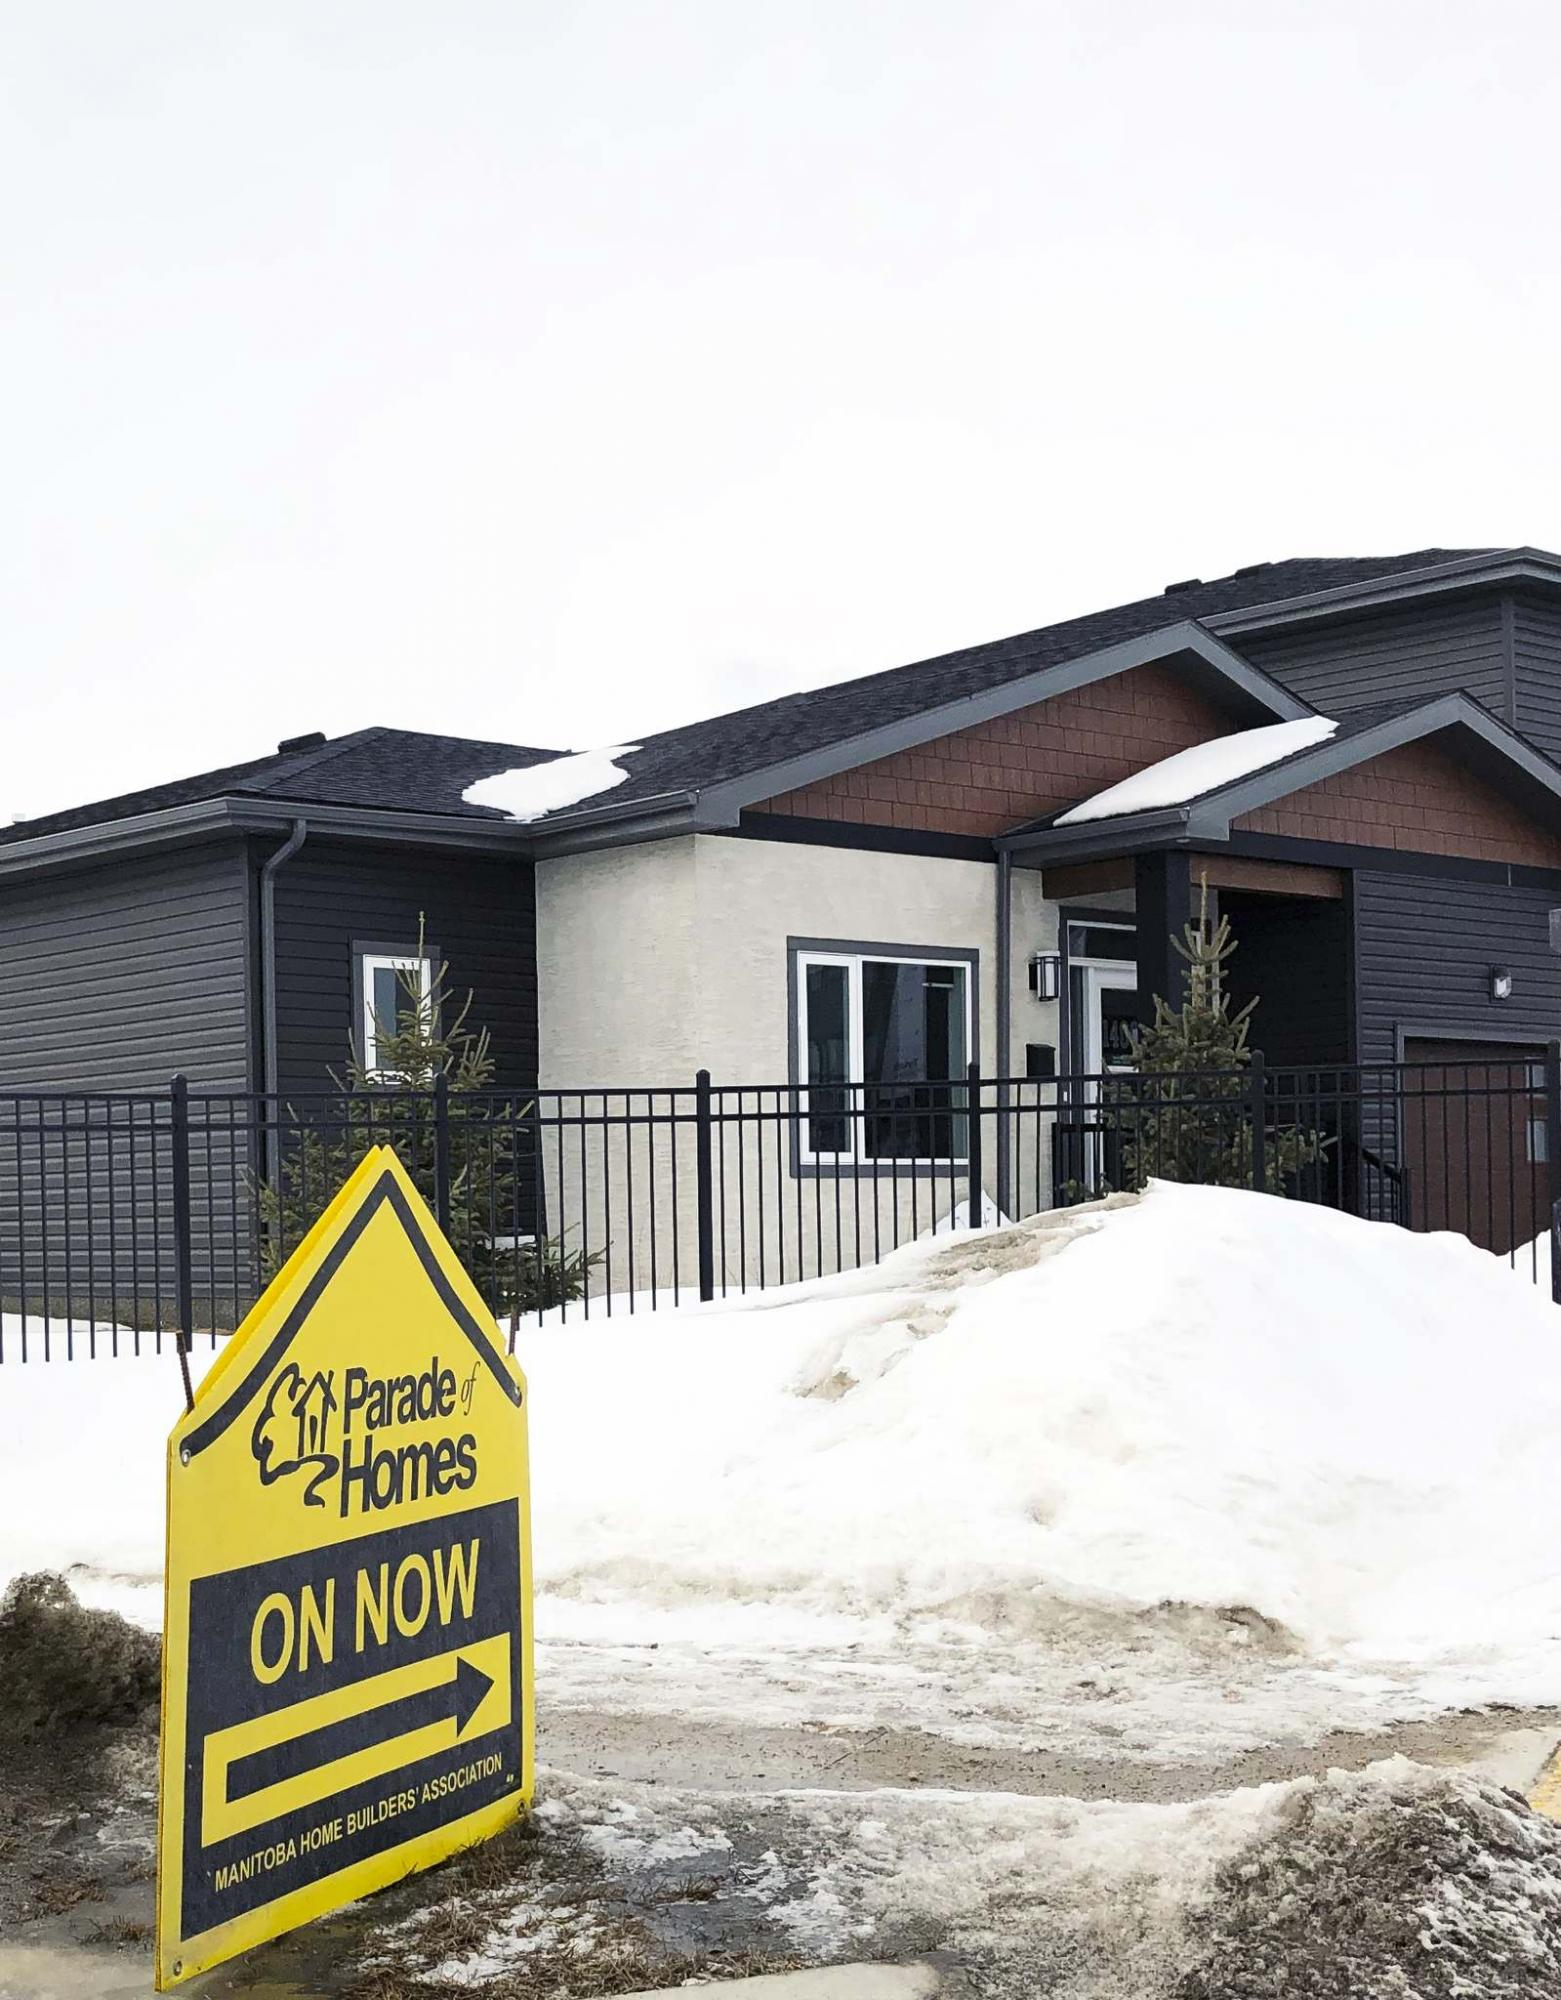 <p>Willy Williamson / Winnipeg Free Press</p><p>The Manitoba Home Builders&rsquo; Association has 99 stunning new homes on display during its Spring Parade of Homes. </p>